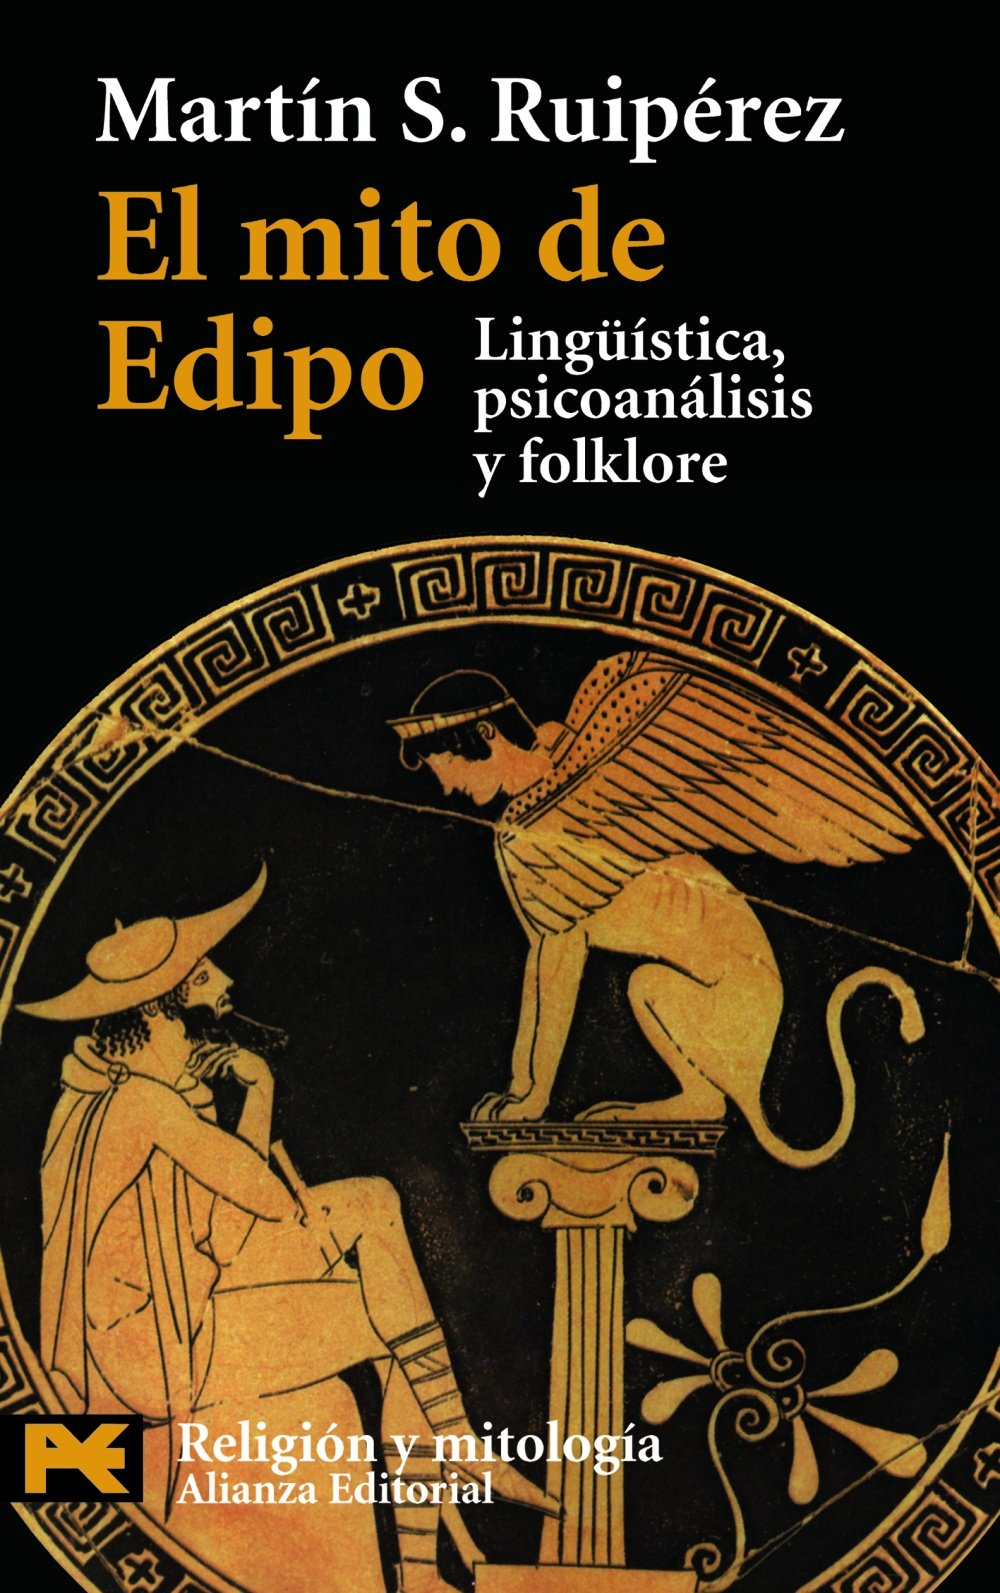 El mito de Edipo / The Myth of Edipo (Humanidades / Humanities) (Spanish Edition) pdf